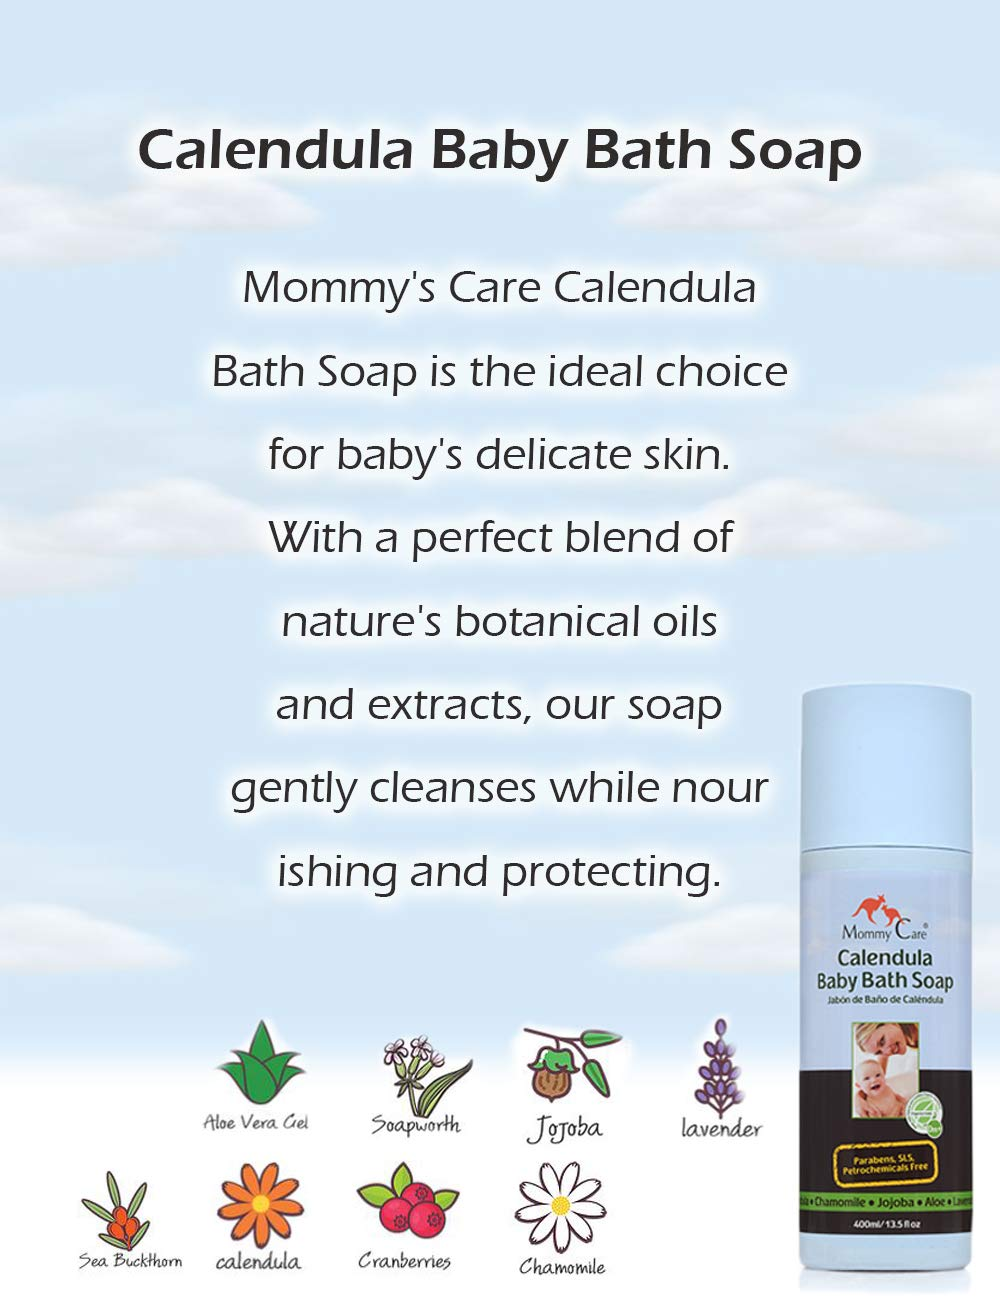 Baby Bath Soap Certified Organic [Mommy Care] Calendula Body Wash for Babies All Skin Types Great for Eczema and Dry Skin [SLS and Paraben Free]